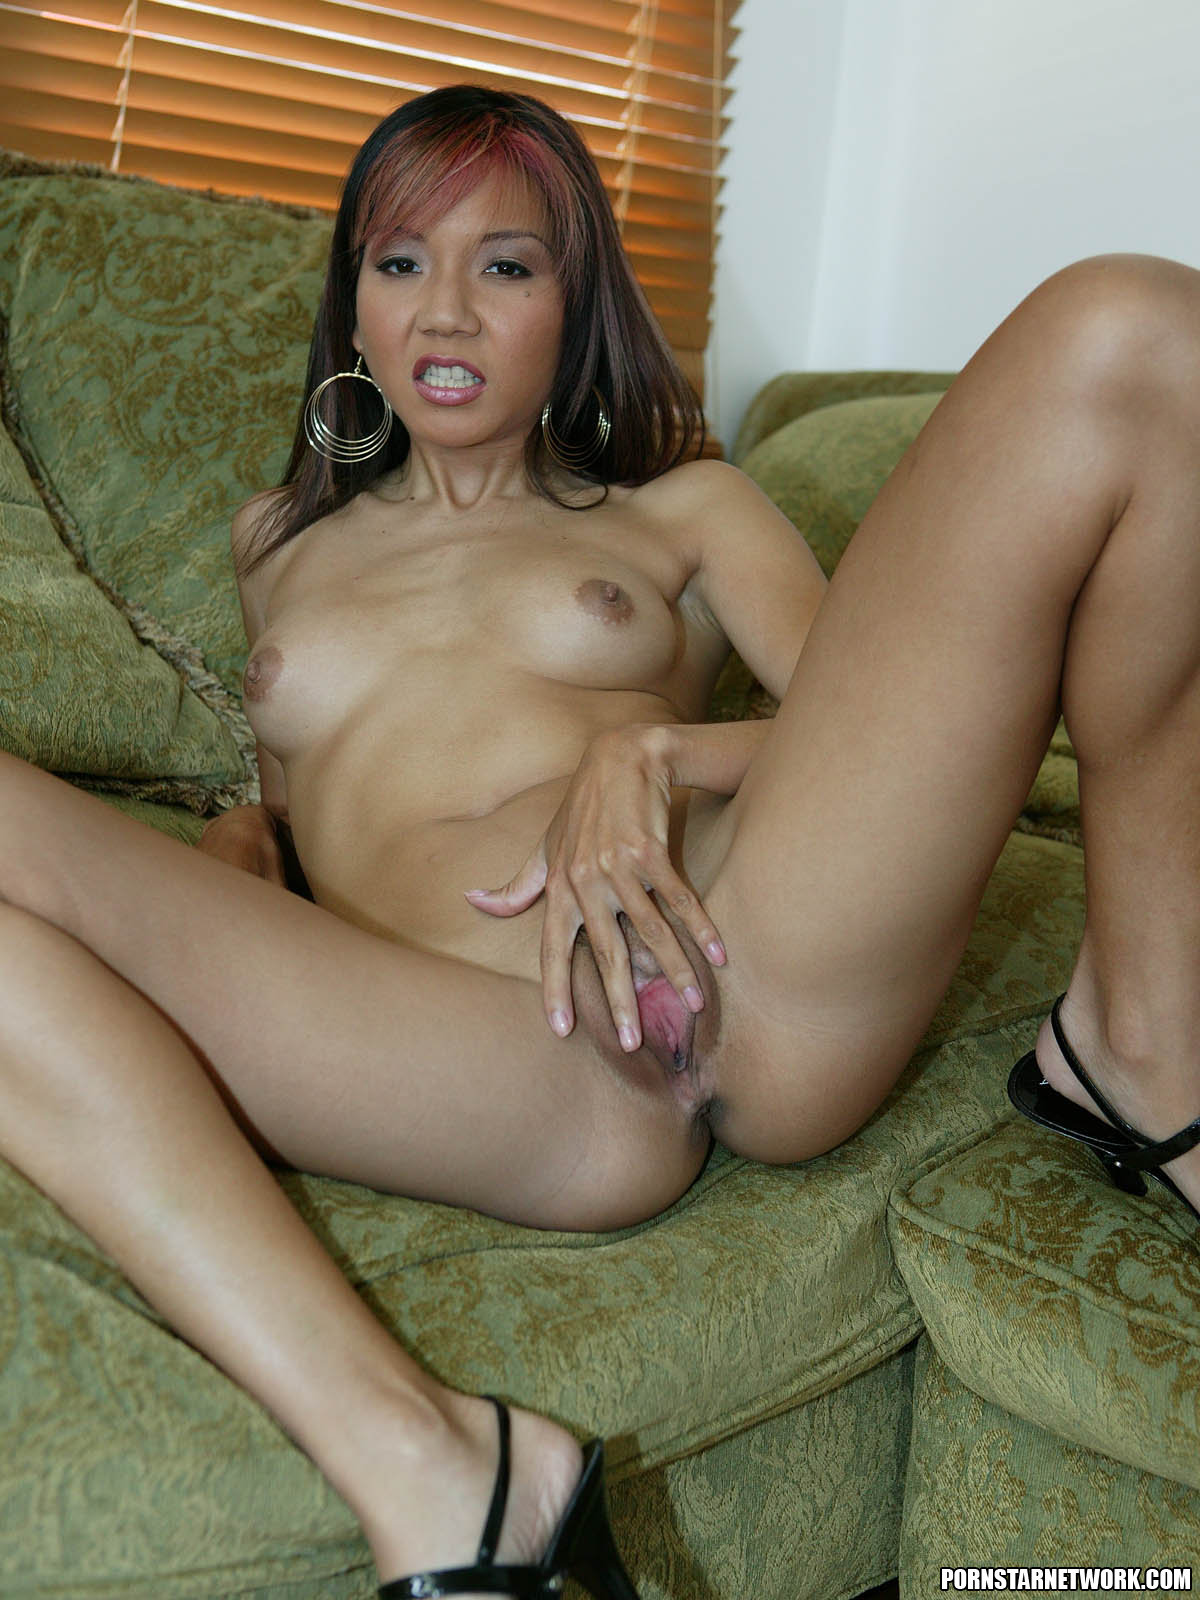 skinny asian keeani lei giving a blowjob 58114